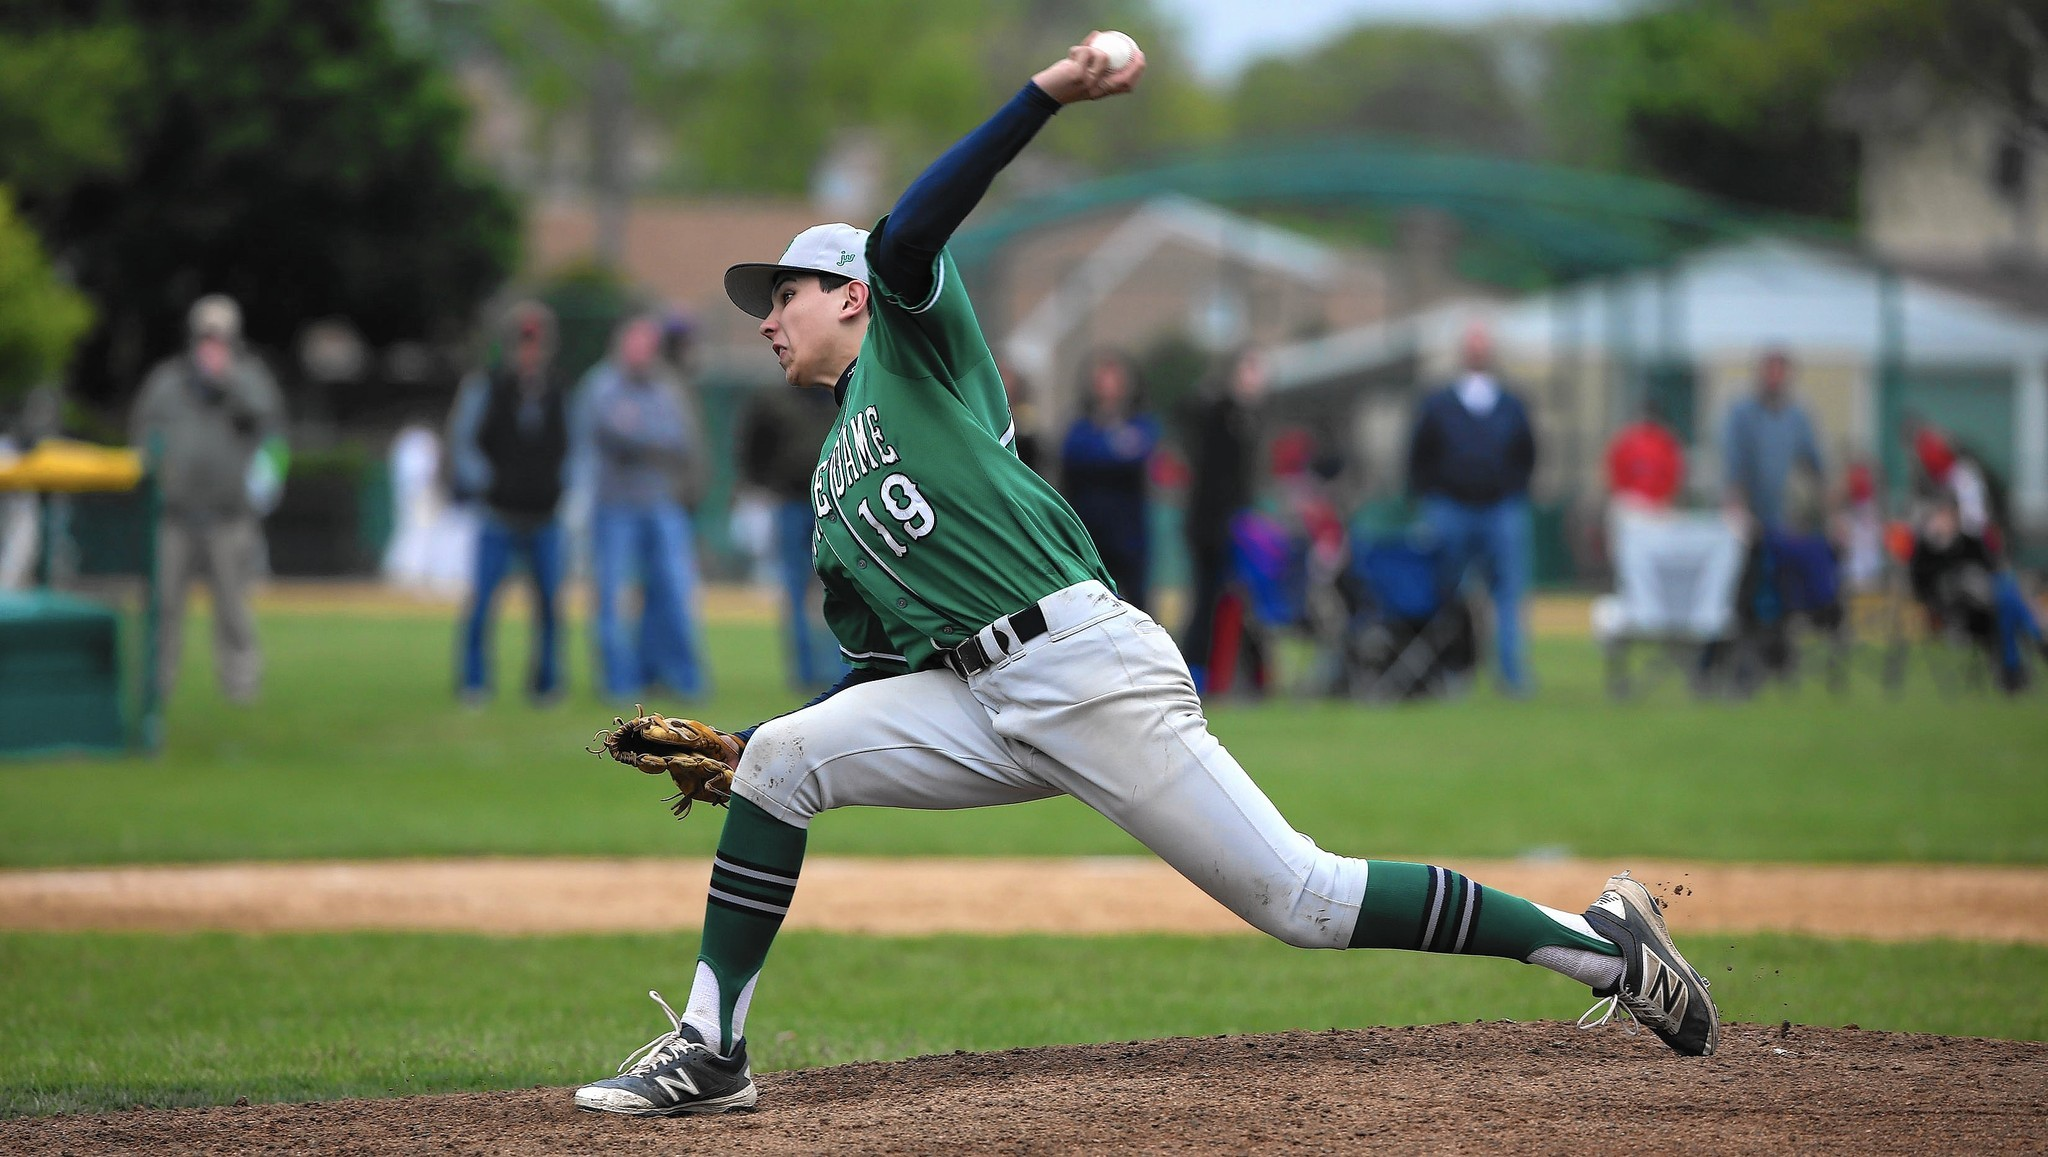 IHSA looks at limit on pitches thrown in baseball - Sun ...